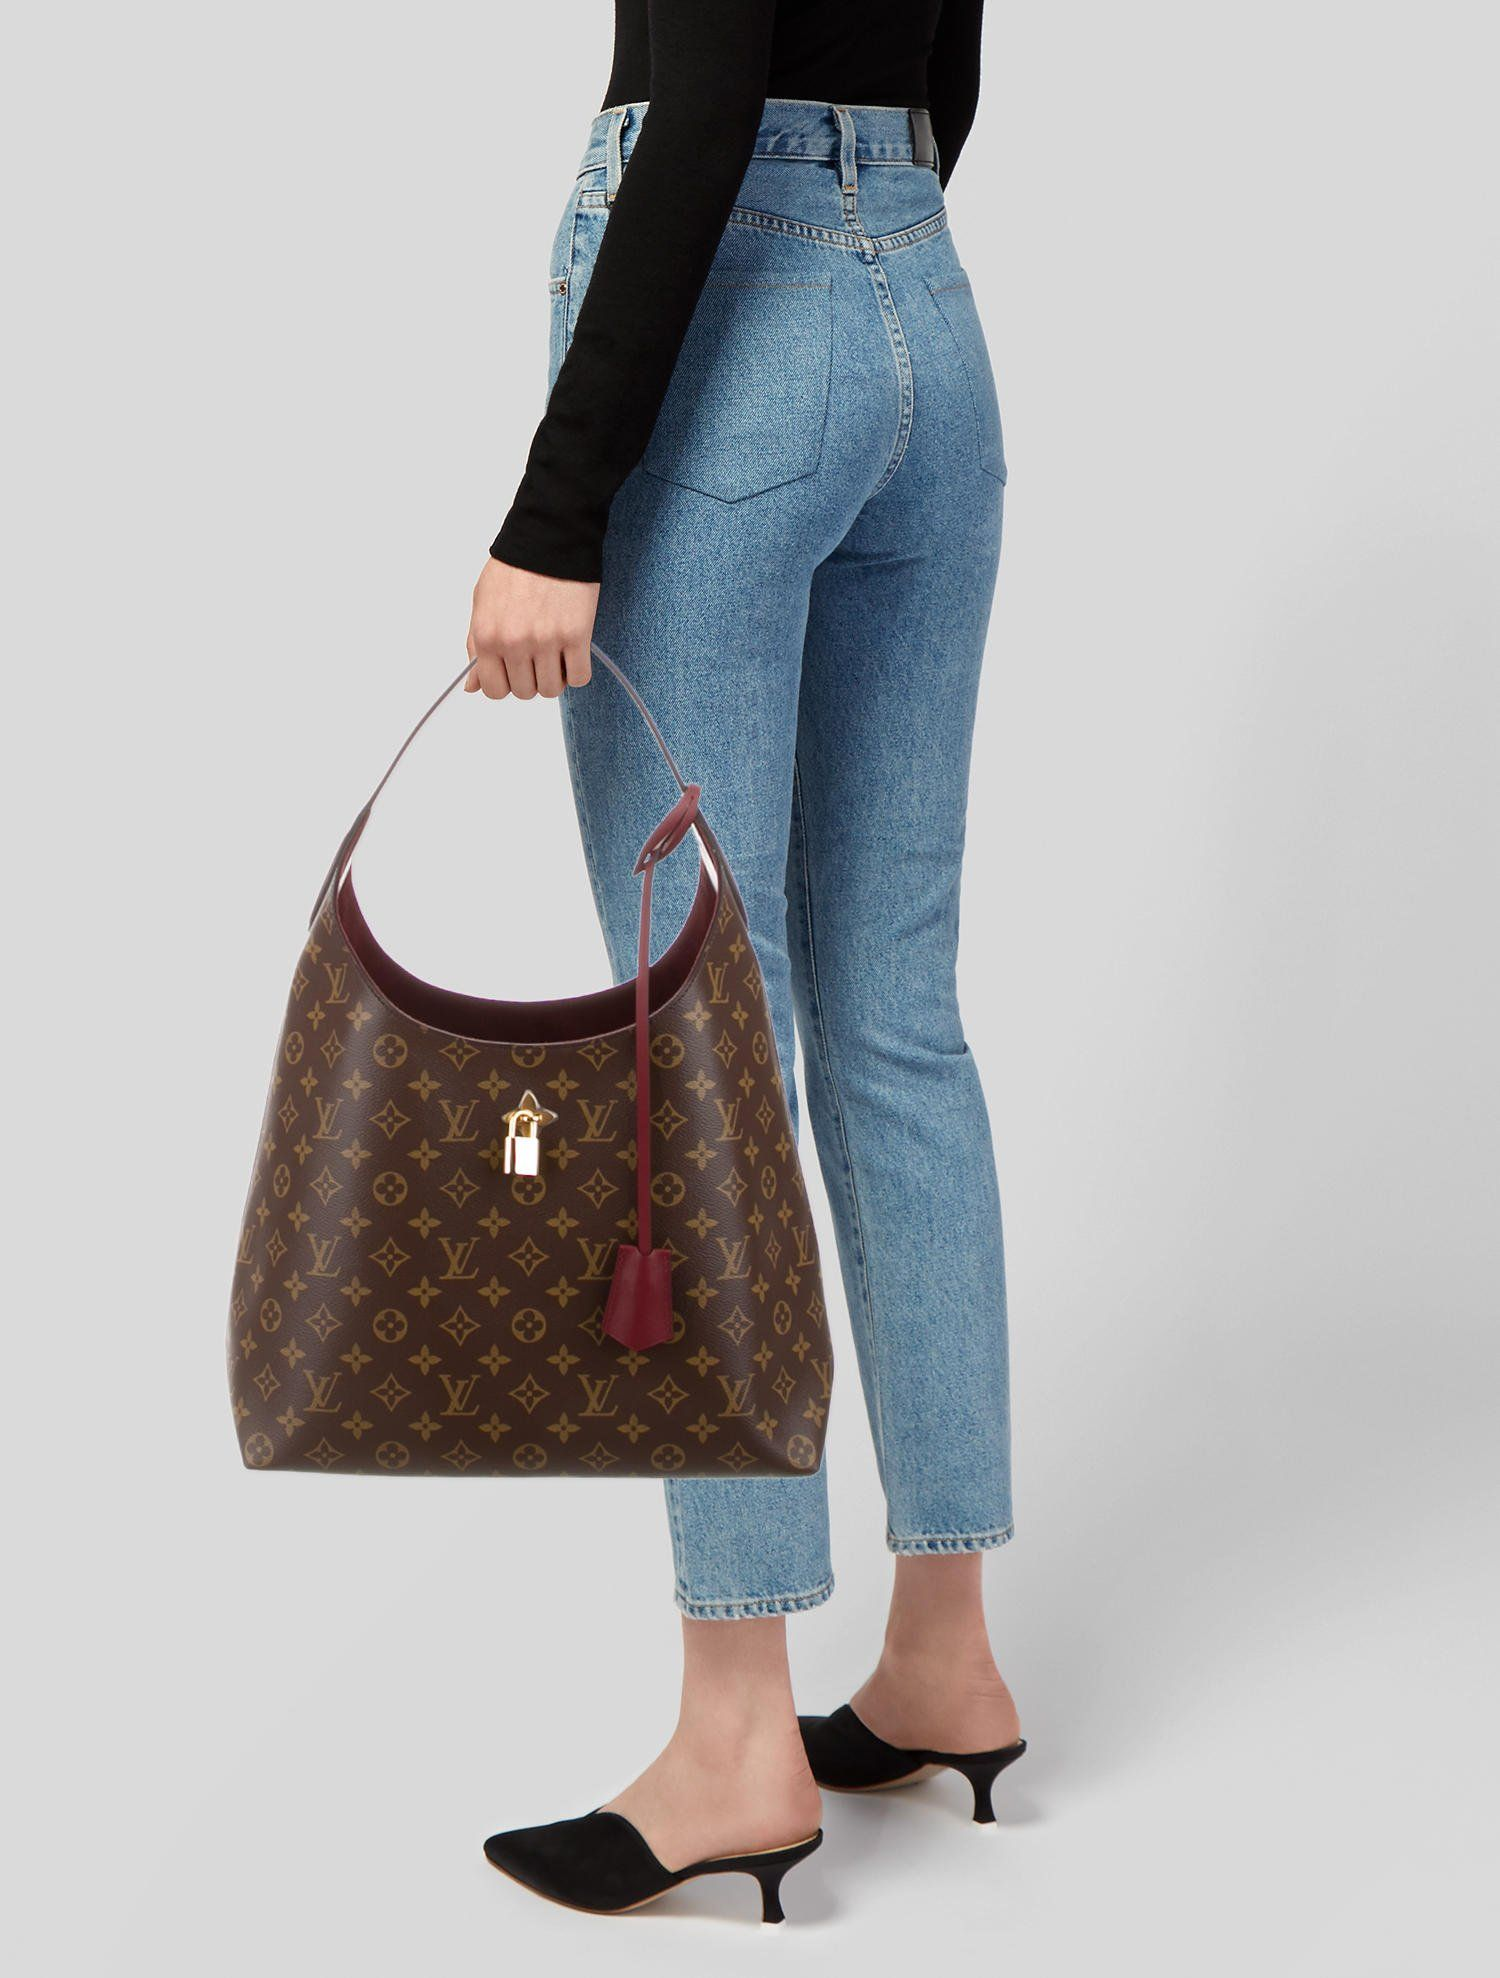 2018 Monogram Flower Hobo Hobo Handbags Louis Vuitton Handbags